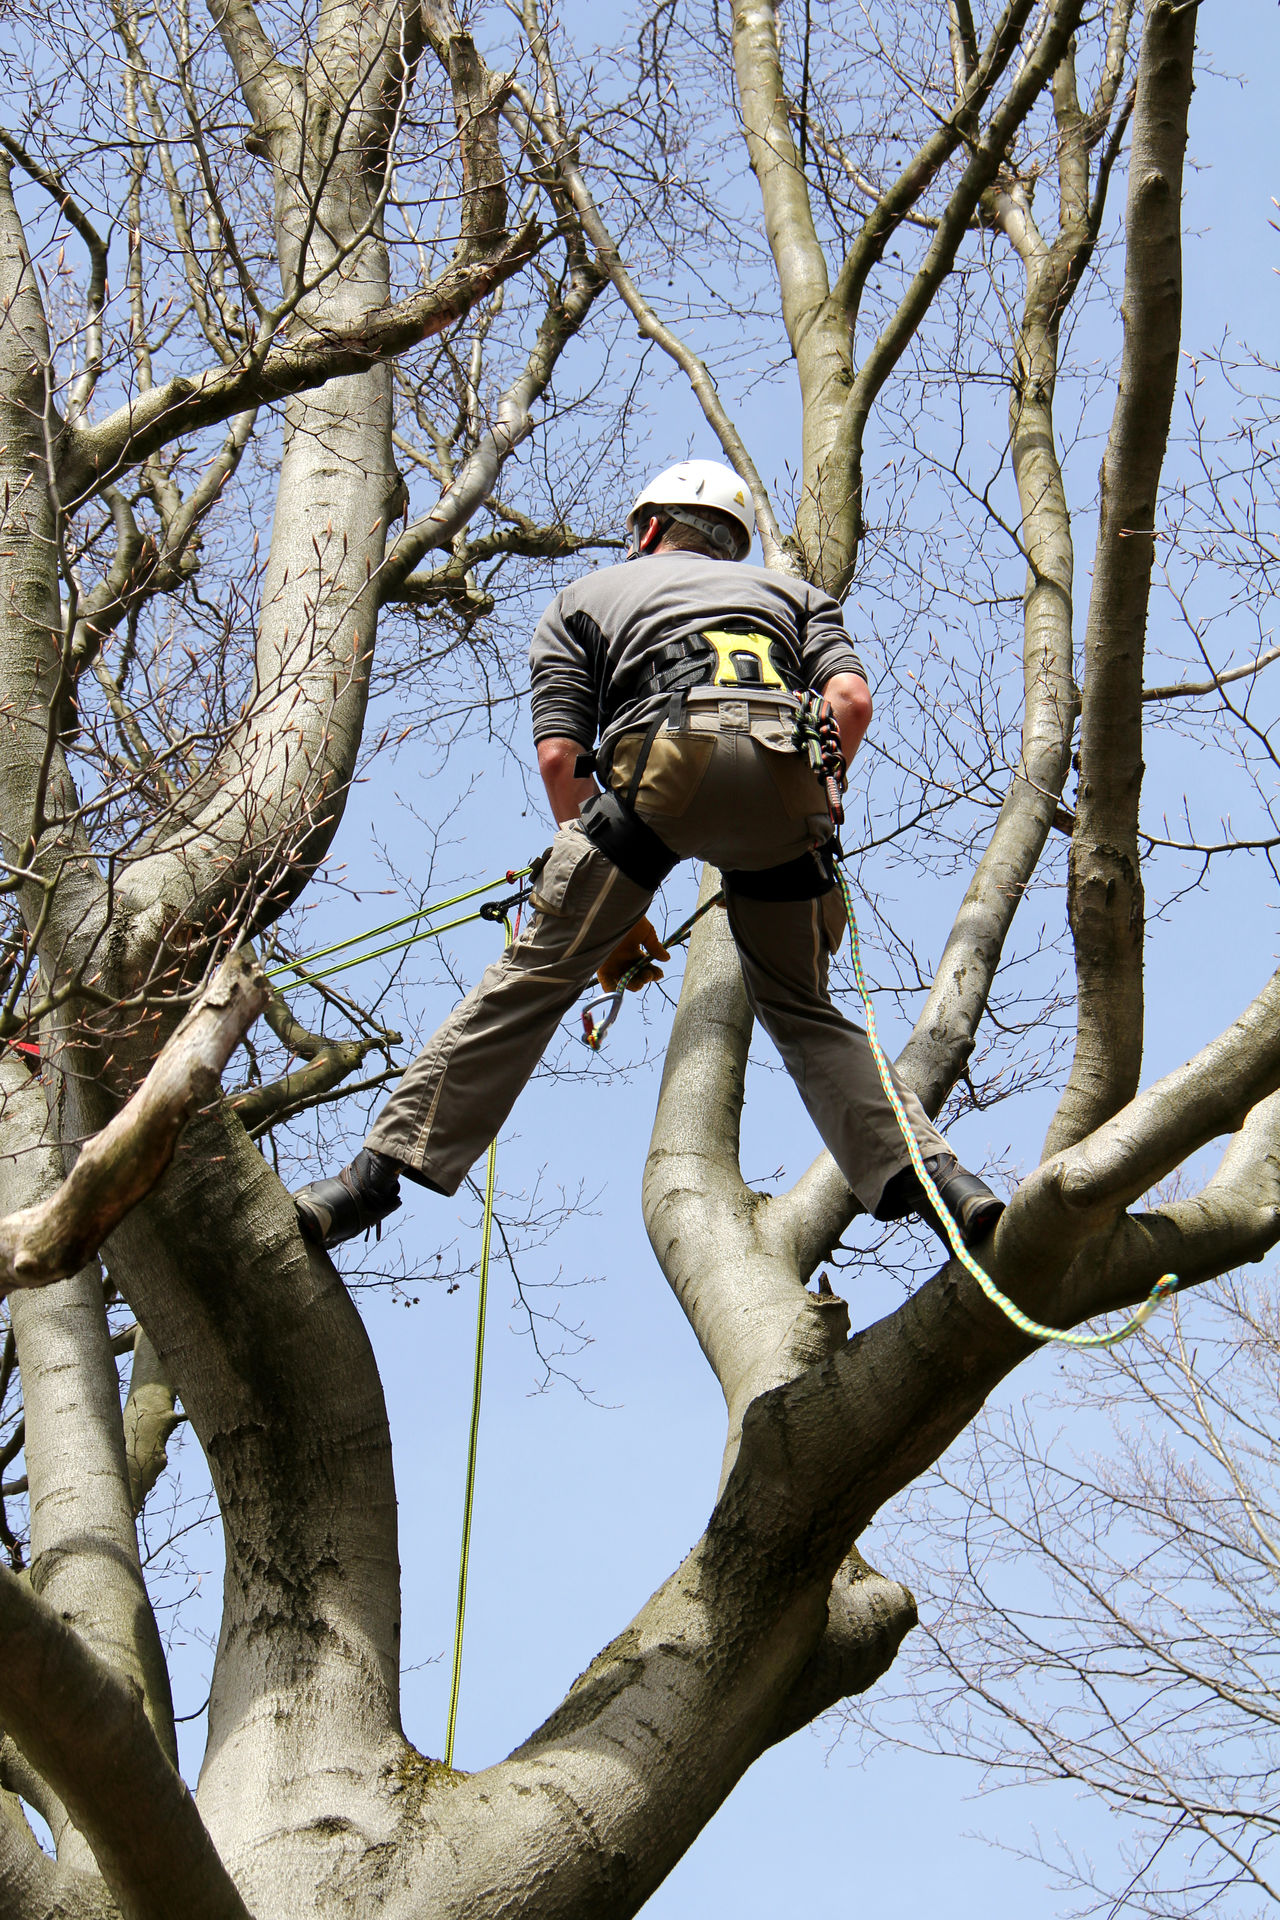 Aborist Adventure Animal Themes Arborist Balance Casual Clothing Cold Day Focus On Foreground Freeclimbing Front View Full Length Holding One Animal Outdoors Real People Saw Side View Sitting Standing Tree TreePorn Winter Young Men Zoology